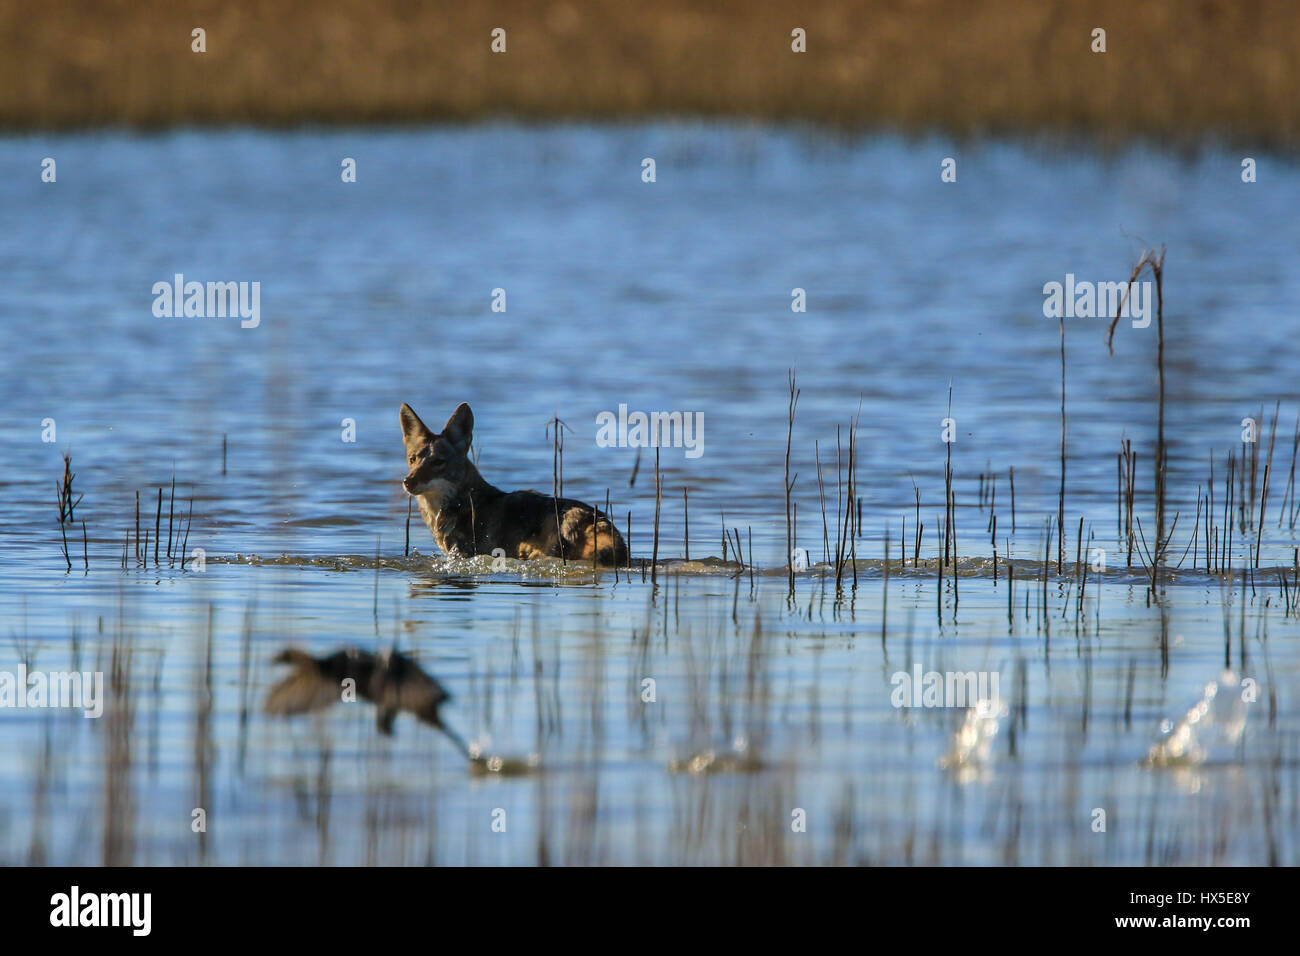 A hungriest of Coyote runs in an attempt to catch a duck to feed, she was seen around the dam Abelardo L. Rodriguez - Stock Image